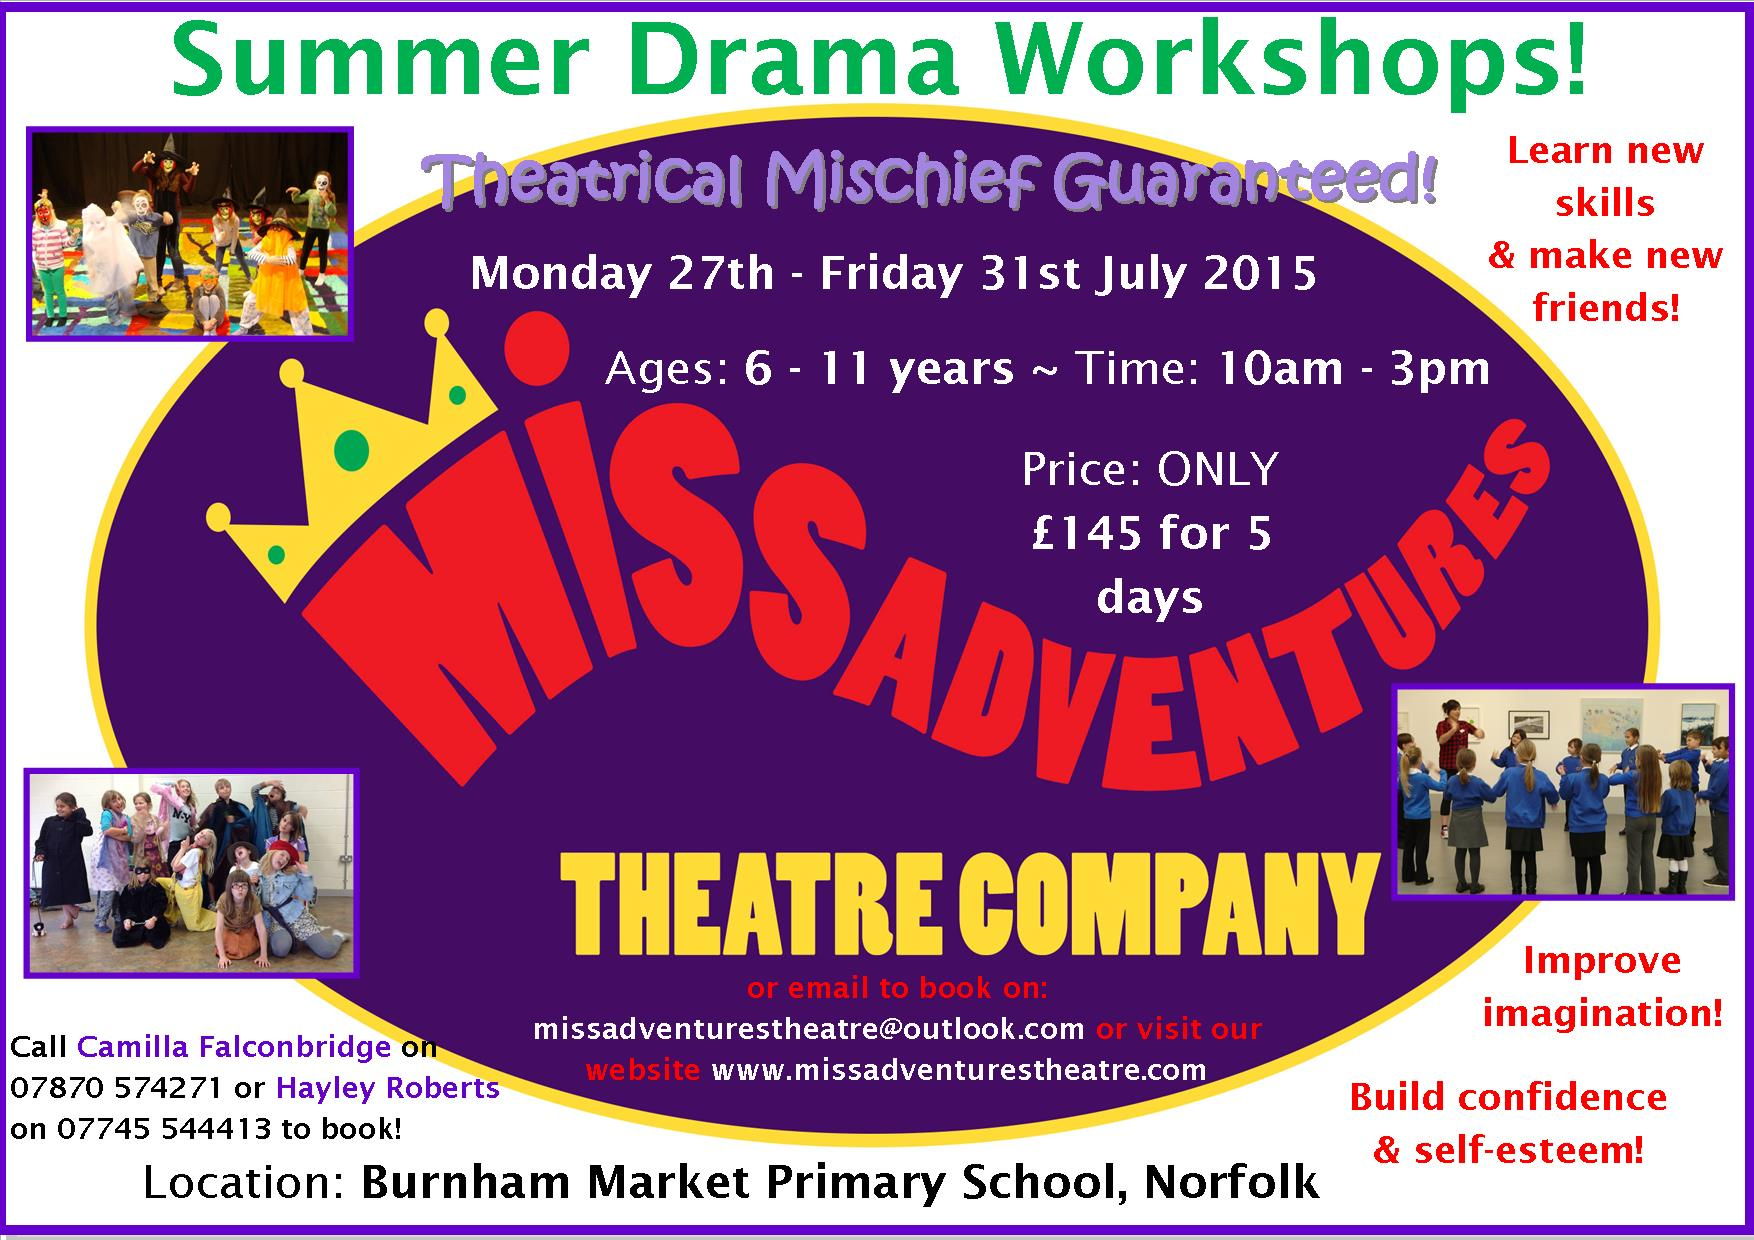 Summer Holiday Drama Workshops | Summer Holiday Drama Workshops for 6-11 yr olds with MissAdventures Theatre Company - Dalegate Market | Shopping & Café, Burnham Deepdale, North Norfolk Coast, England, UK